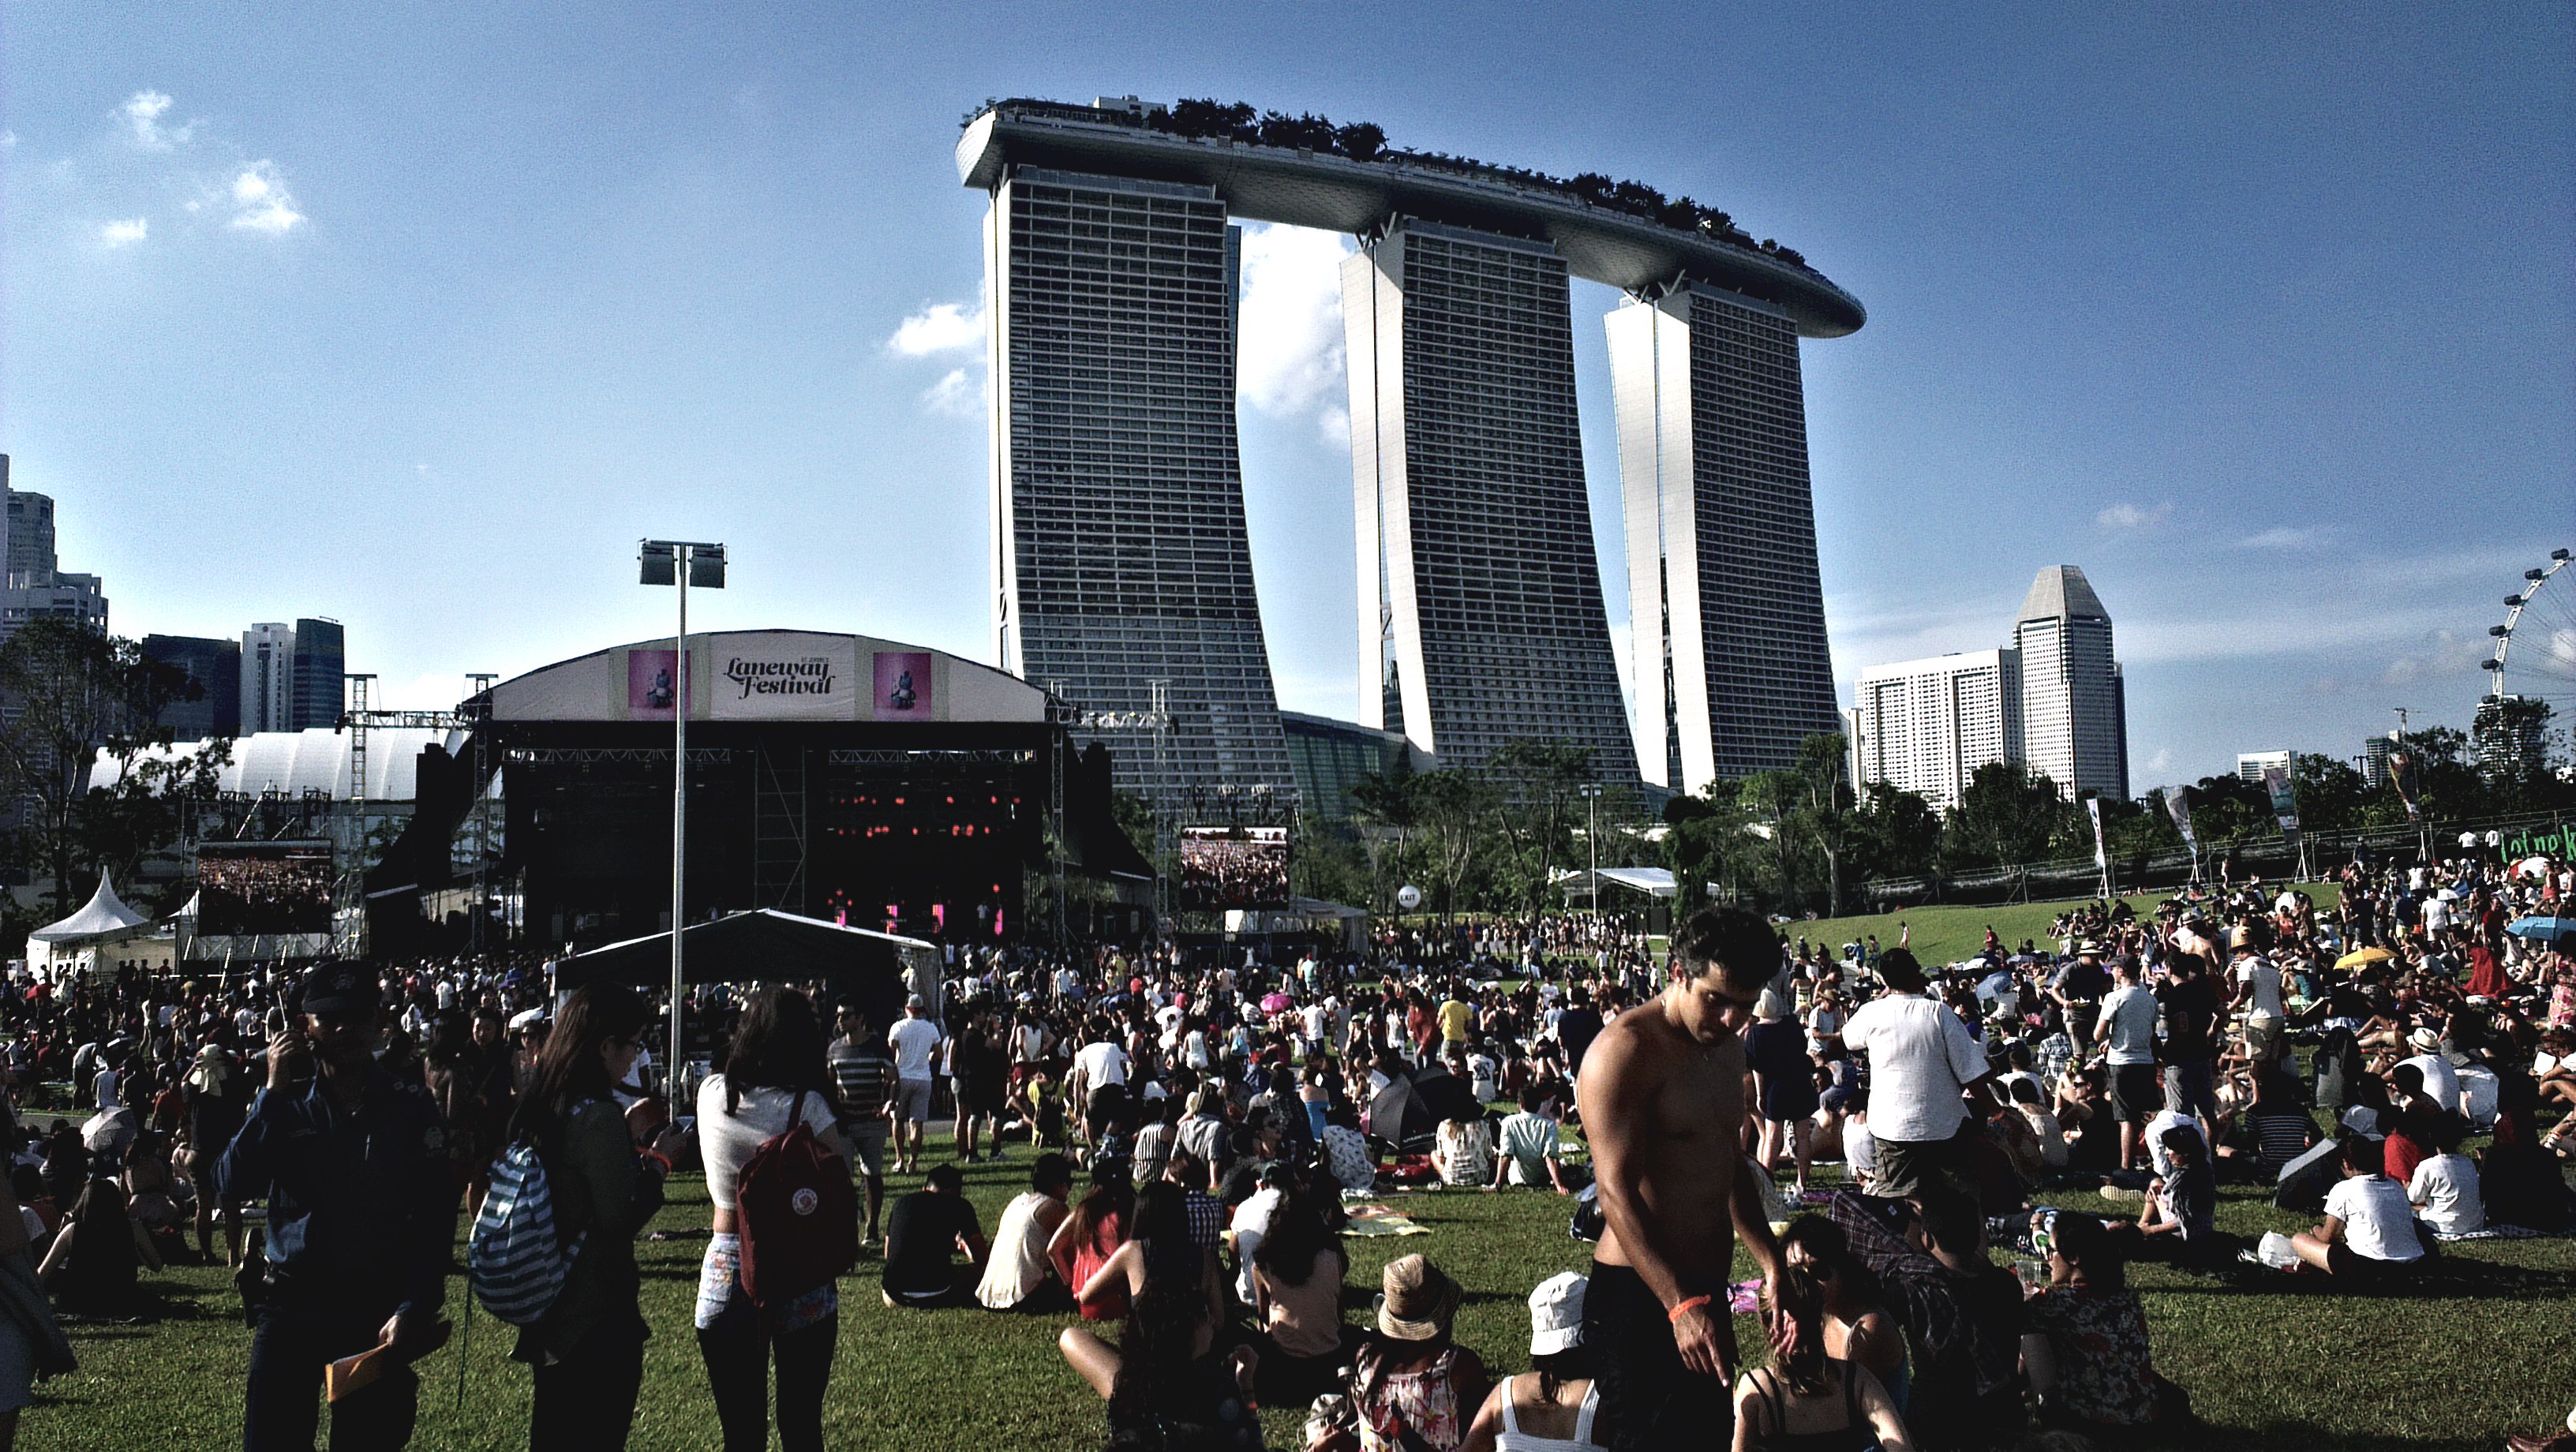 The Laneway stage, set against the backdrop of Singapore's skyline.